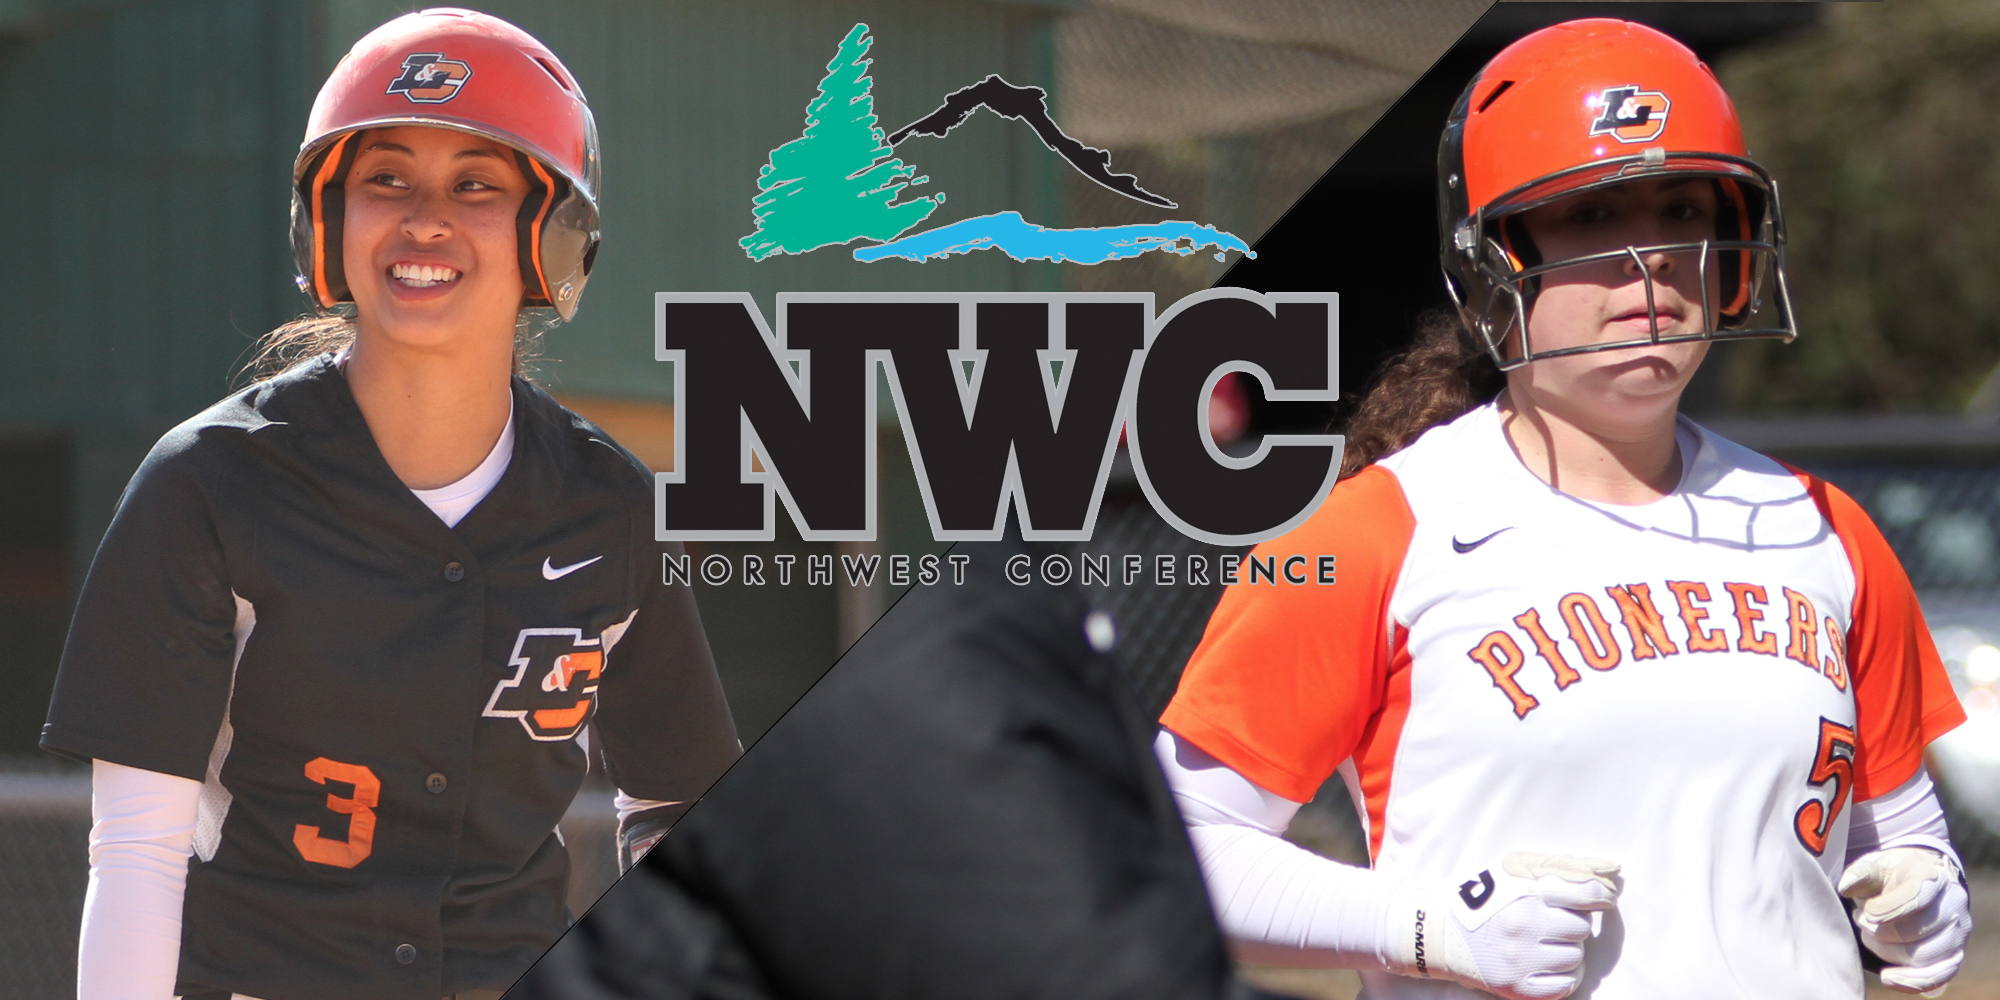 Rosario, Duilio named to All-Northwest Conference team